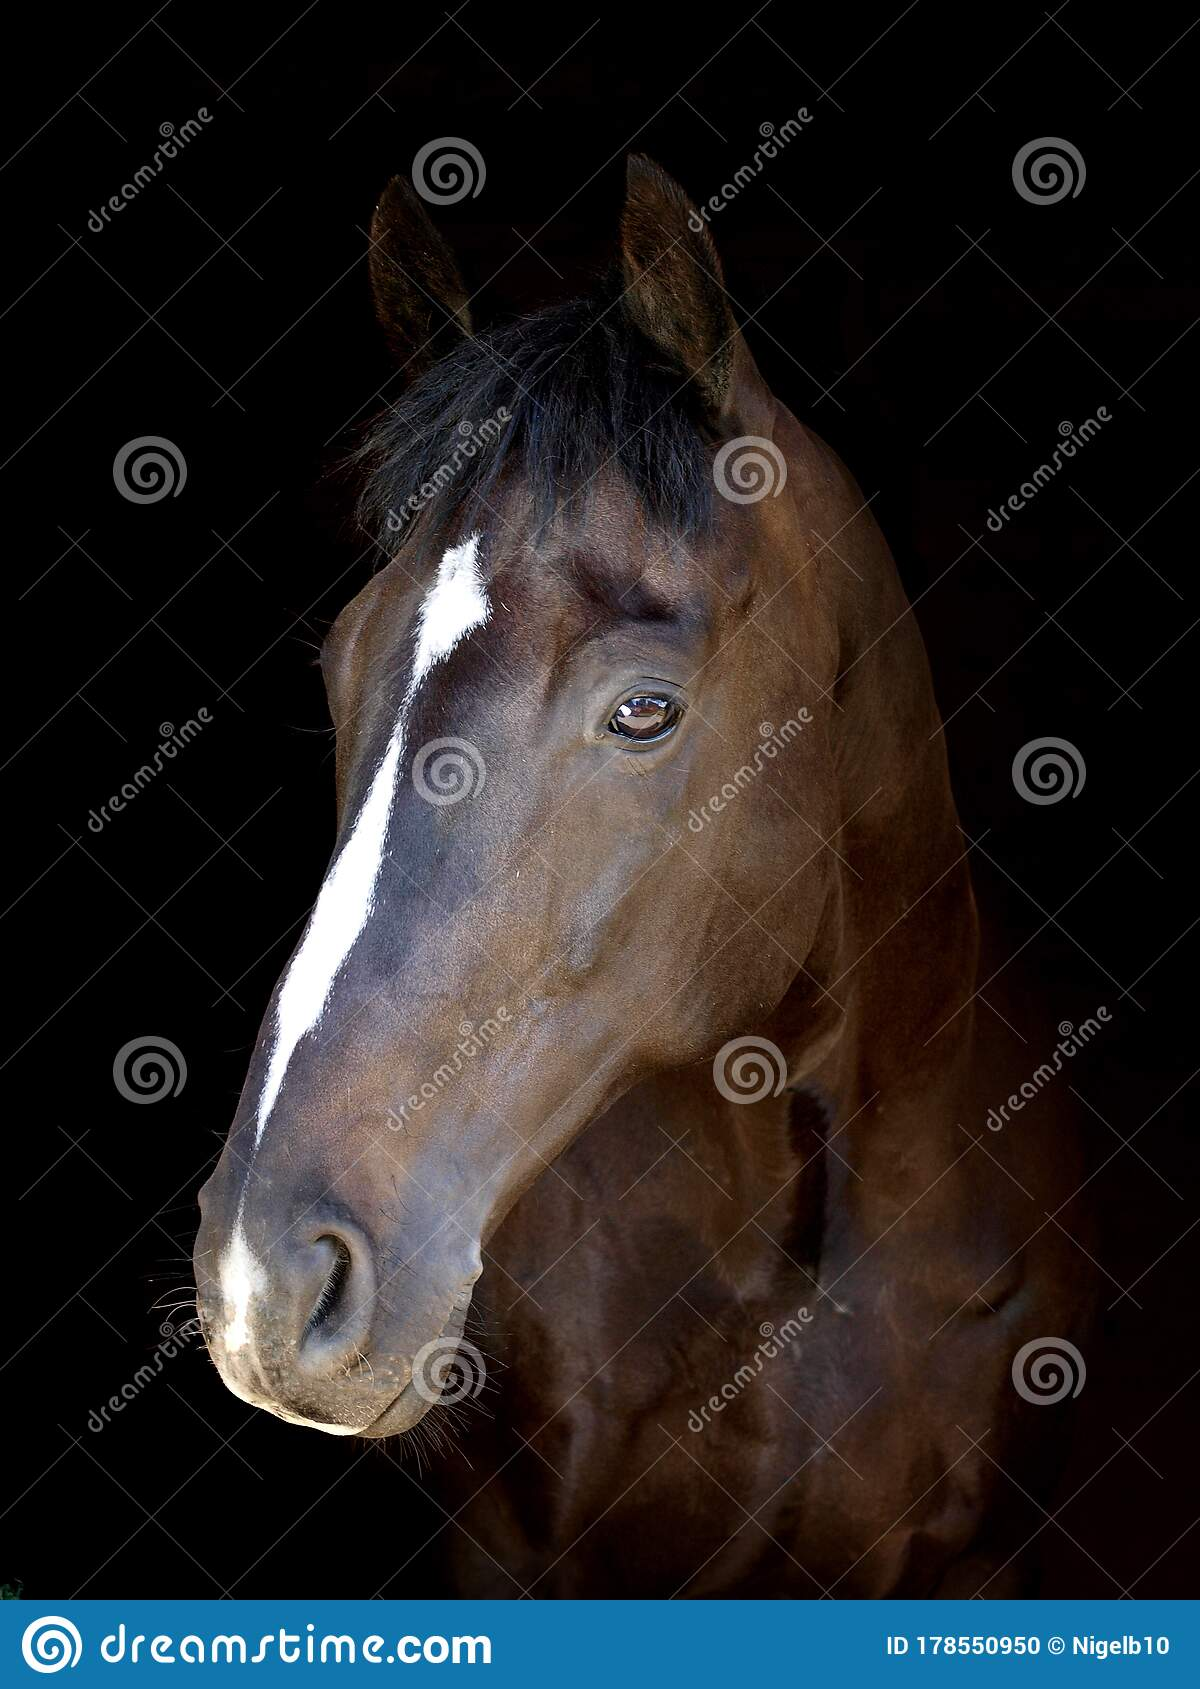 Beautiful Horse Head Shot Stock Photo Image Of Looking 178550950